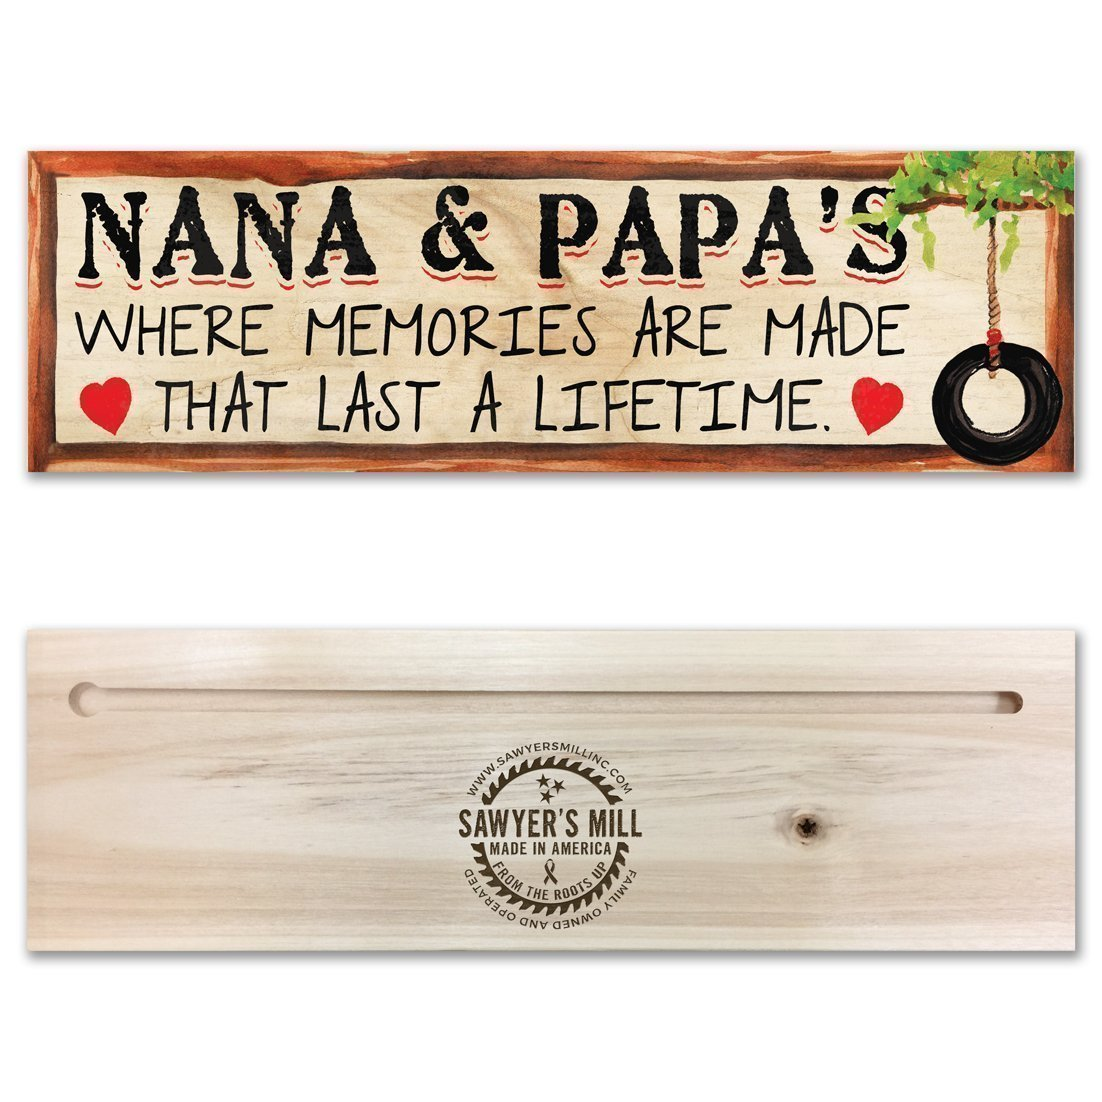 Nana and Papa's, Where Memories are Made that Last a Lifetime | 4-inch by 12-inch | Handmade Wood Block Sign with Grandparents Quote Nana and Papa' s